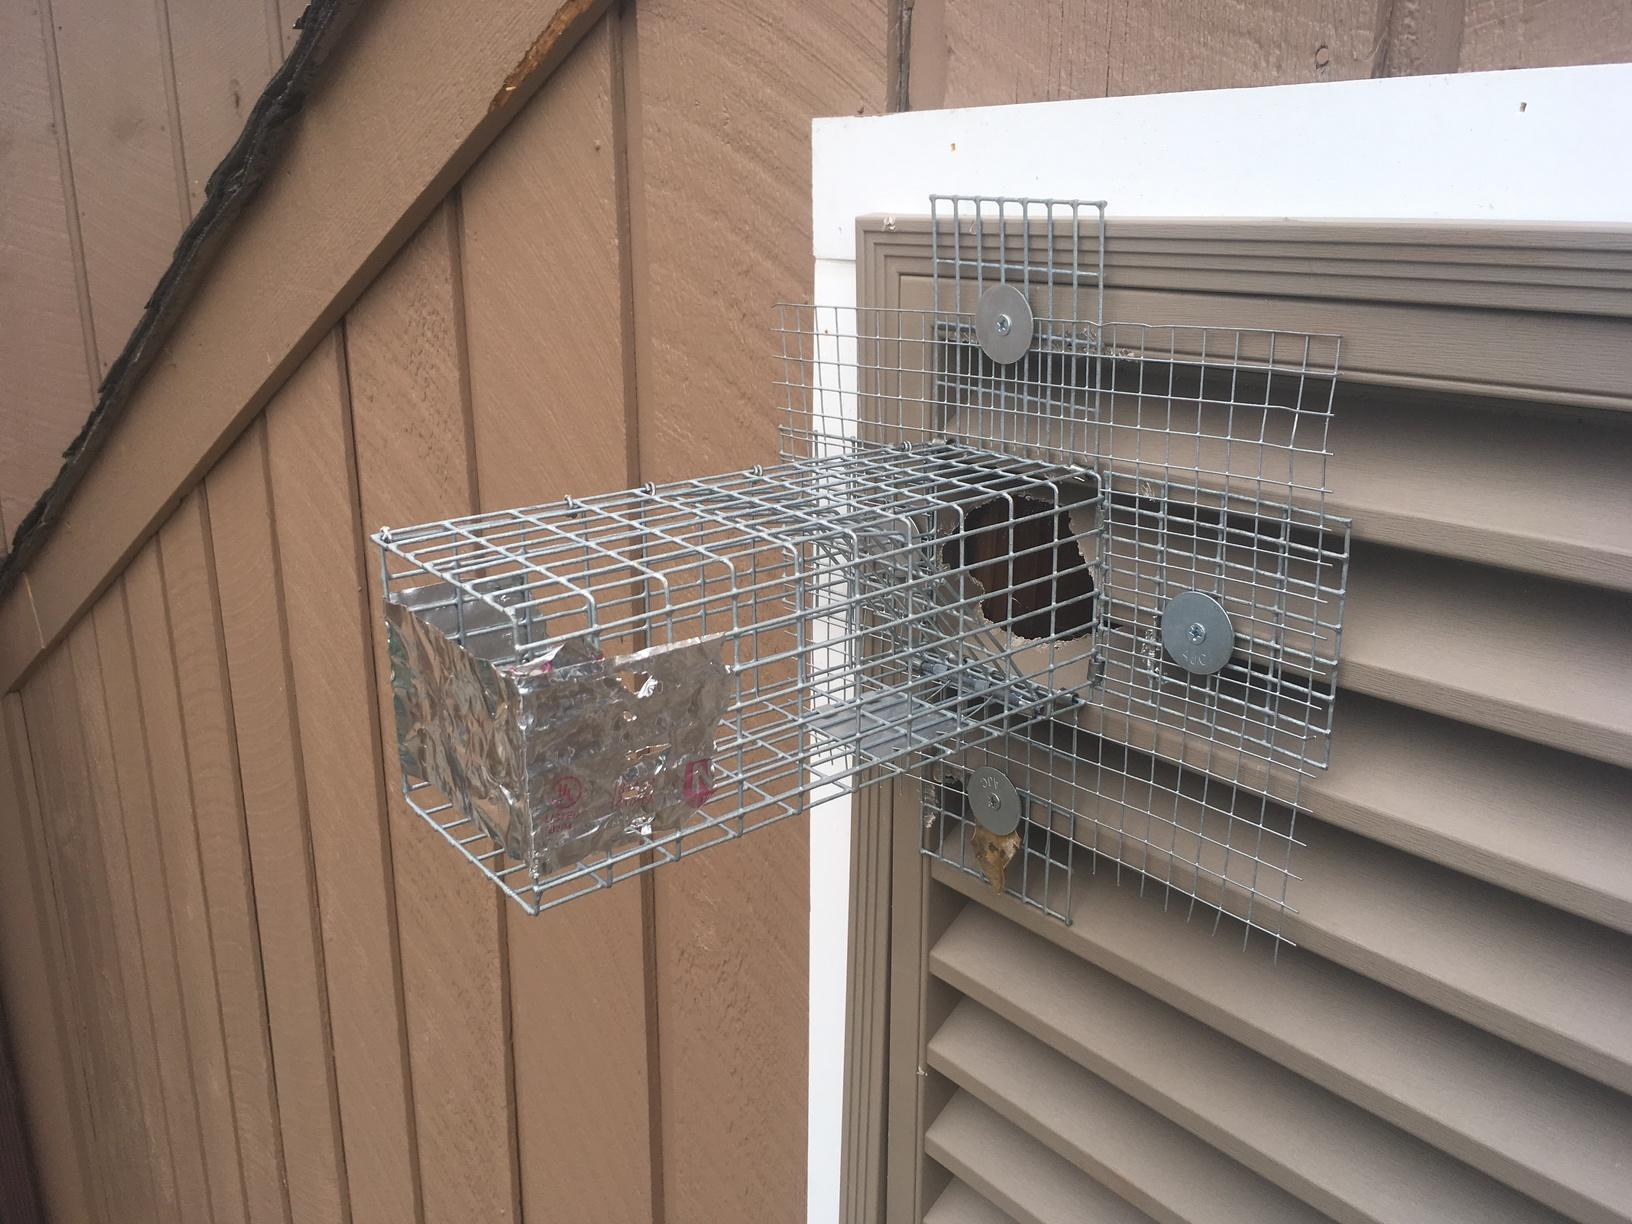 One-way trap for squirrels in Imlaystown, NJ